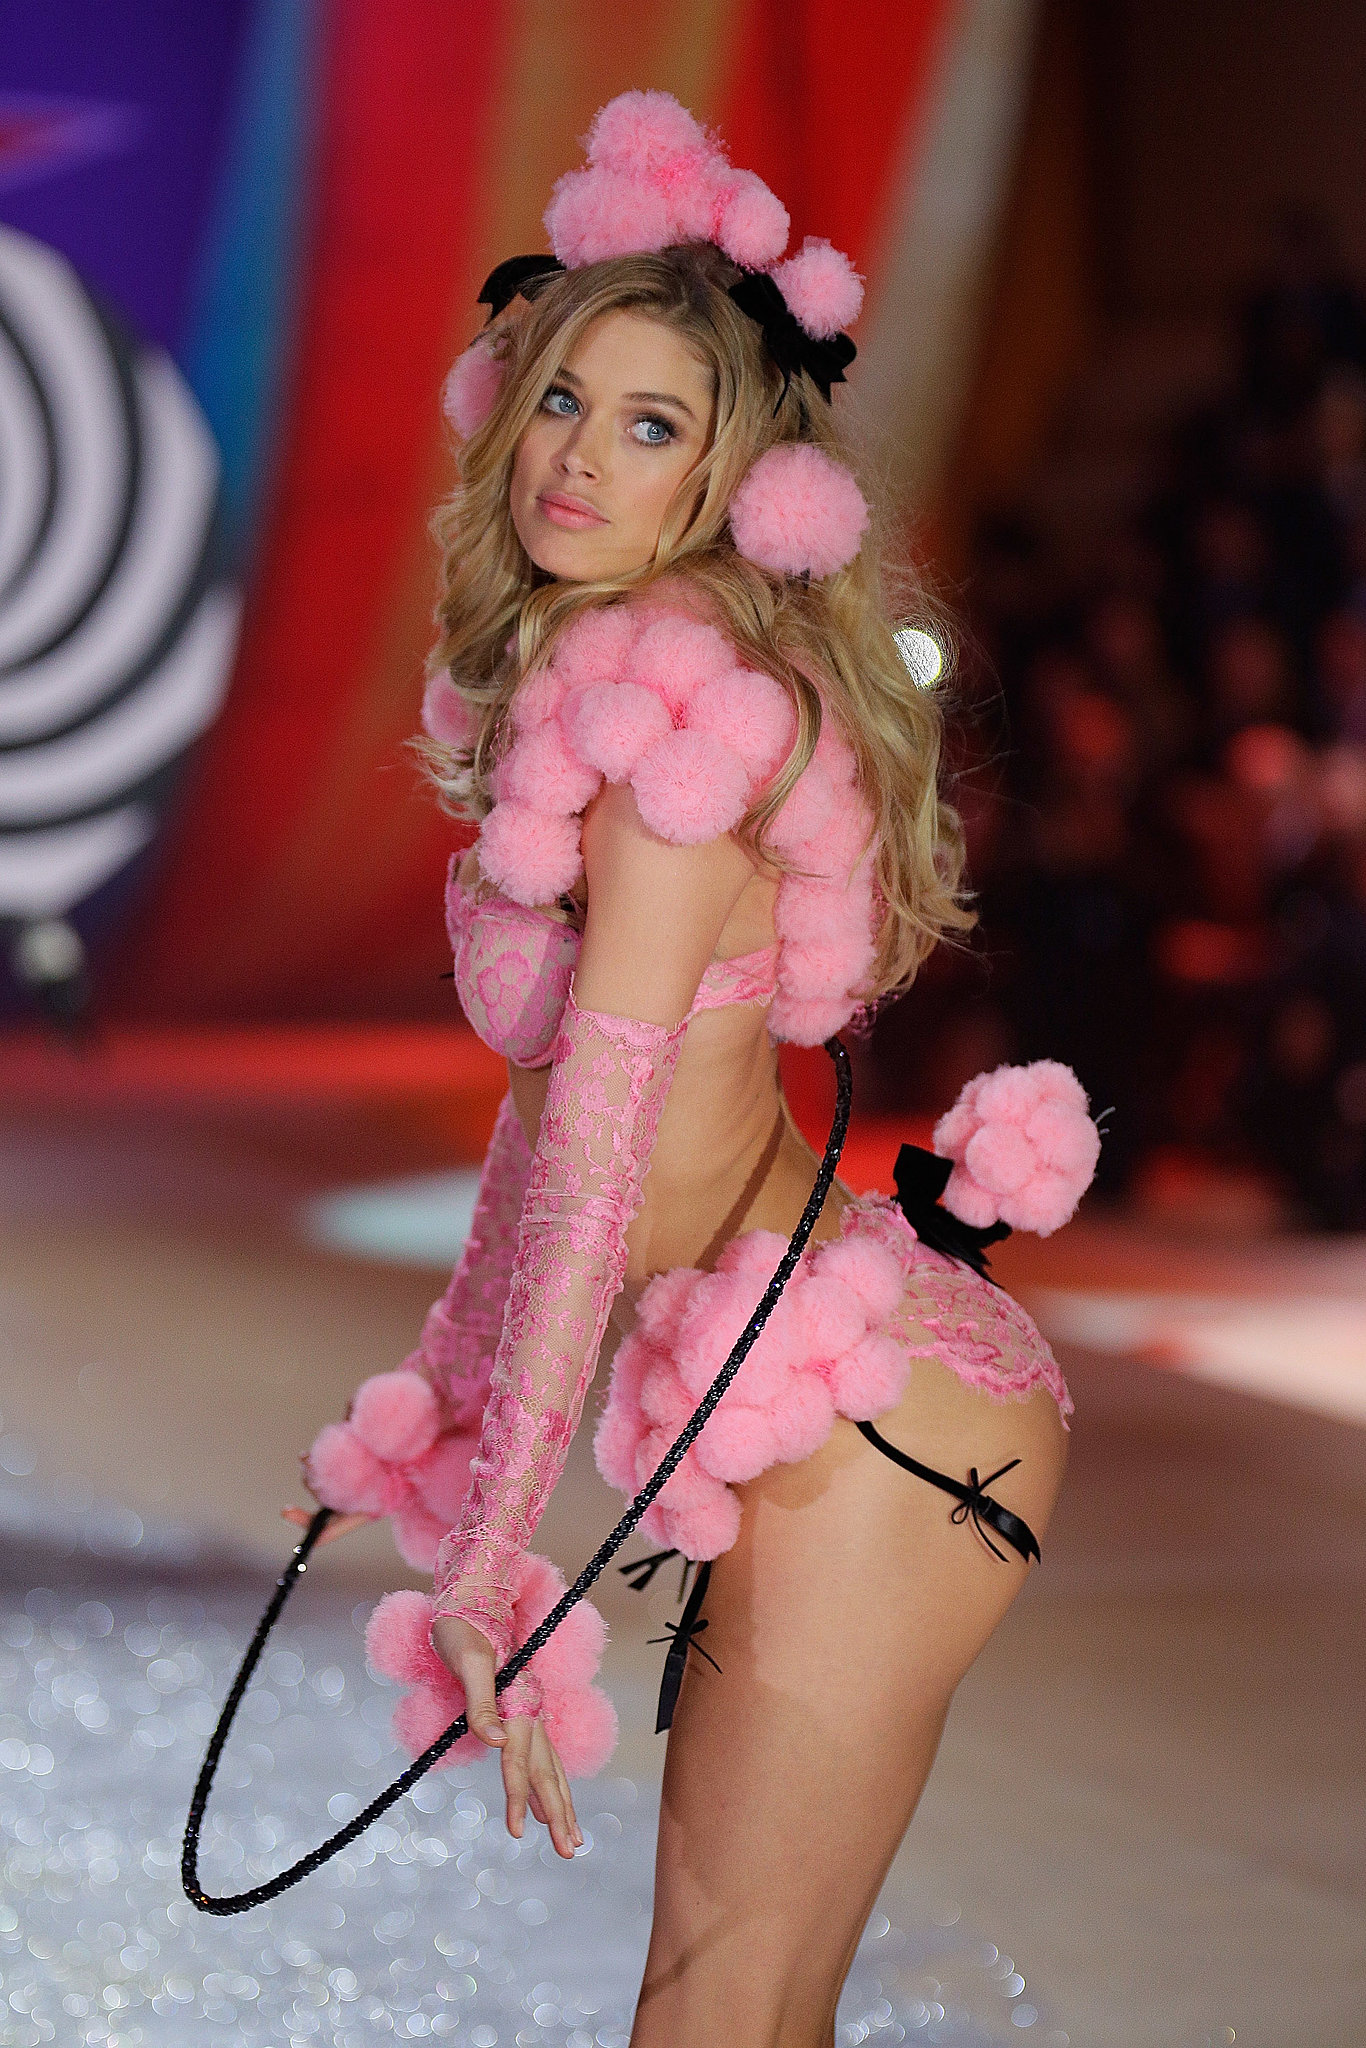 Doutzen Kroes gave her best poodle impression on the runway in 2012.